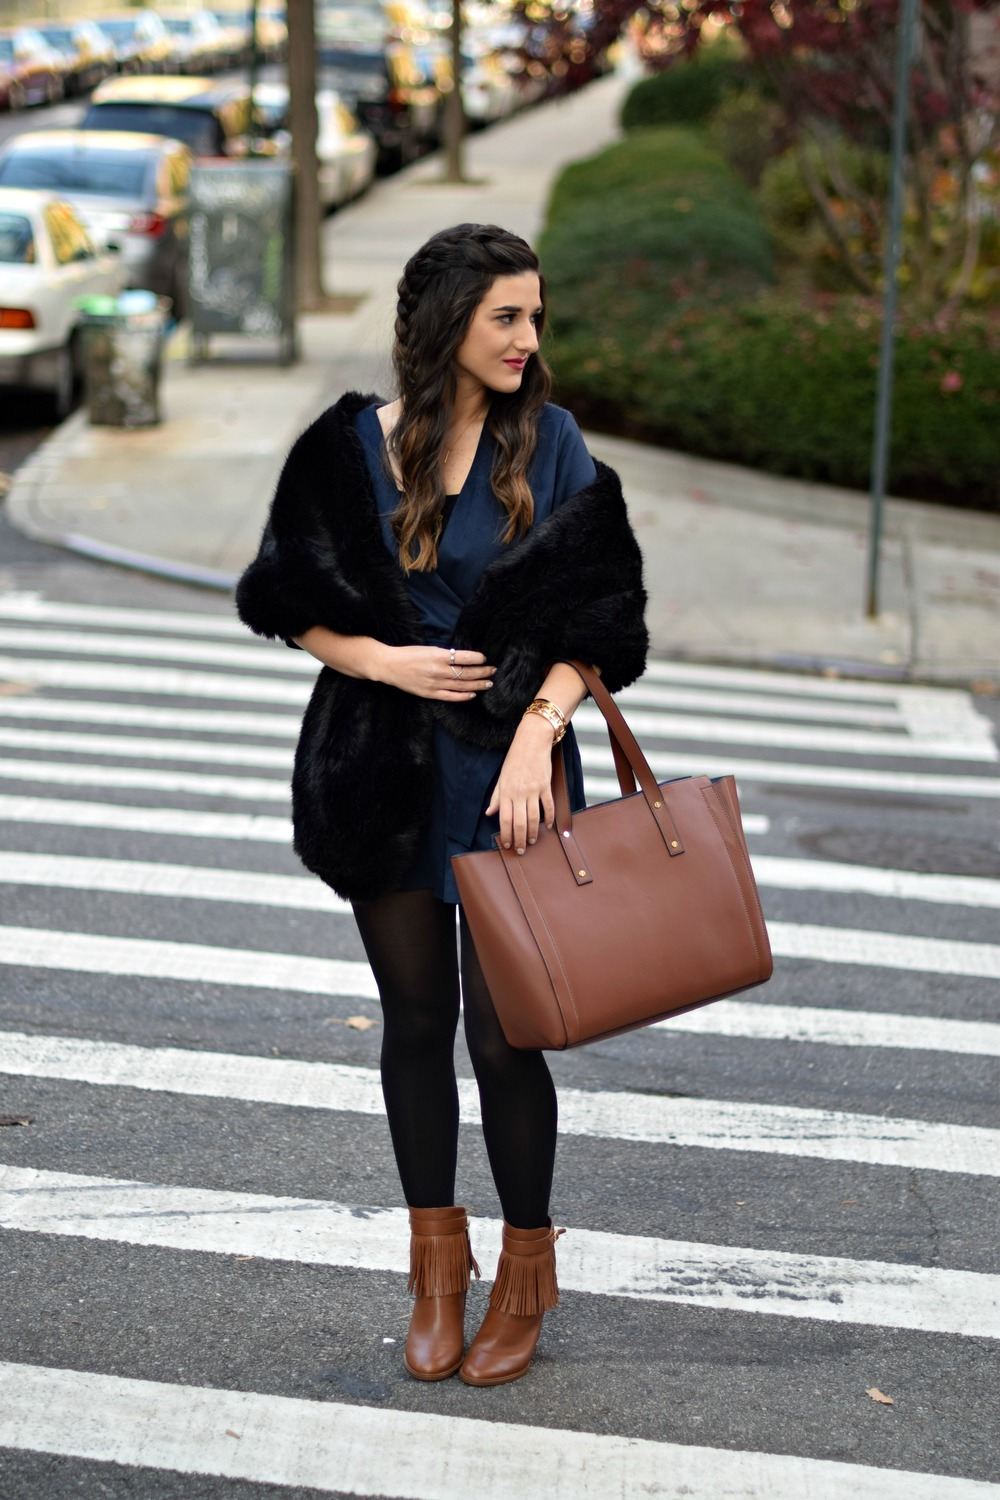 Navy Romper Fringe Booties Louboutins & Love Fashion Blog Esther Santer NYC Street Style Blogger Zara Plaid Coat Leather Sleeves Girl Women OOTD Outfit Soho Tote Ivanka Trump Accessories Shoes Boots Winter Black Tights Hair Braid Inspo Rings Jewelry.jpg